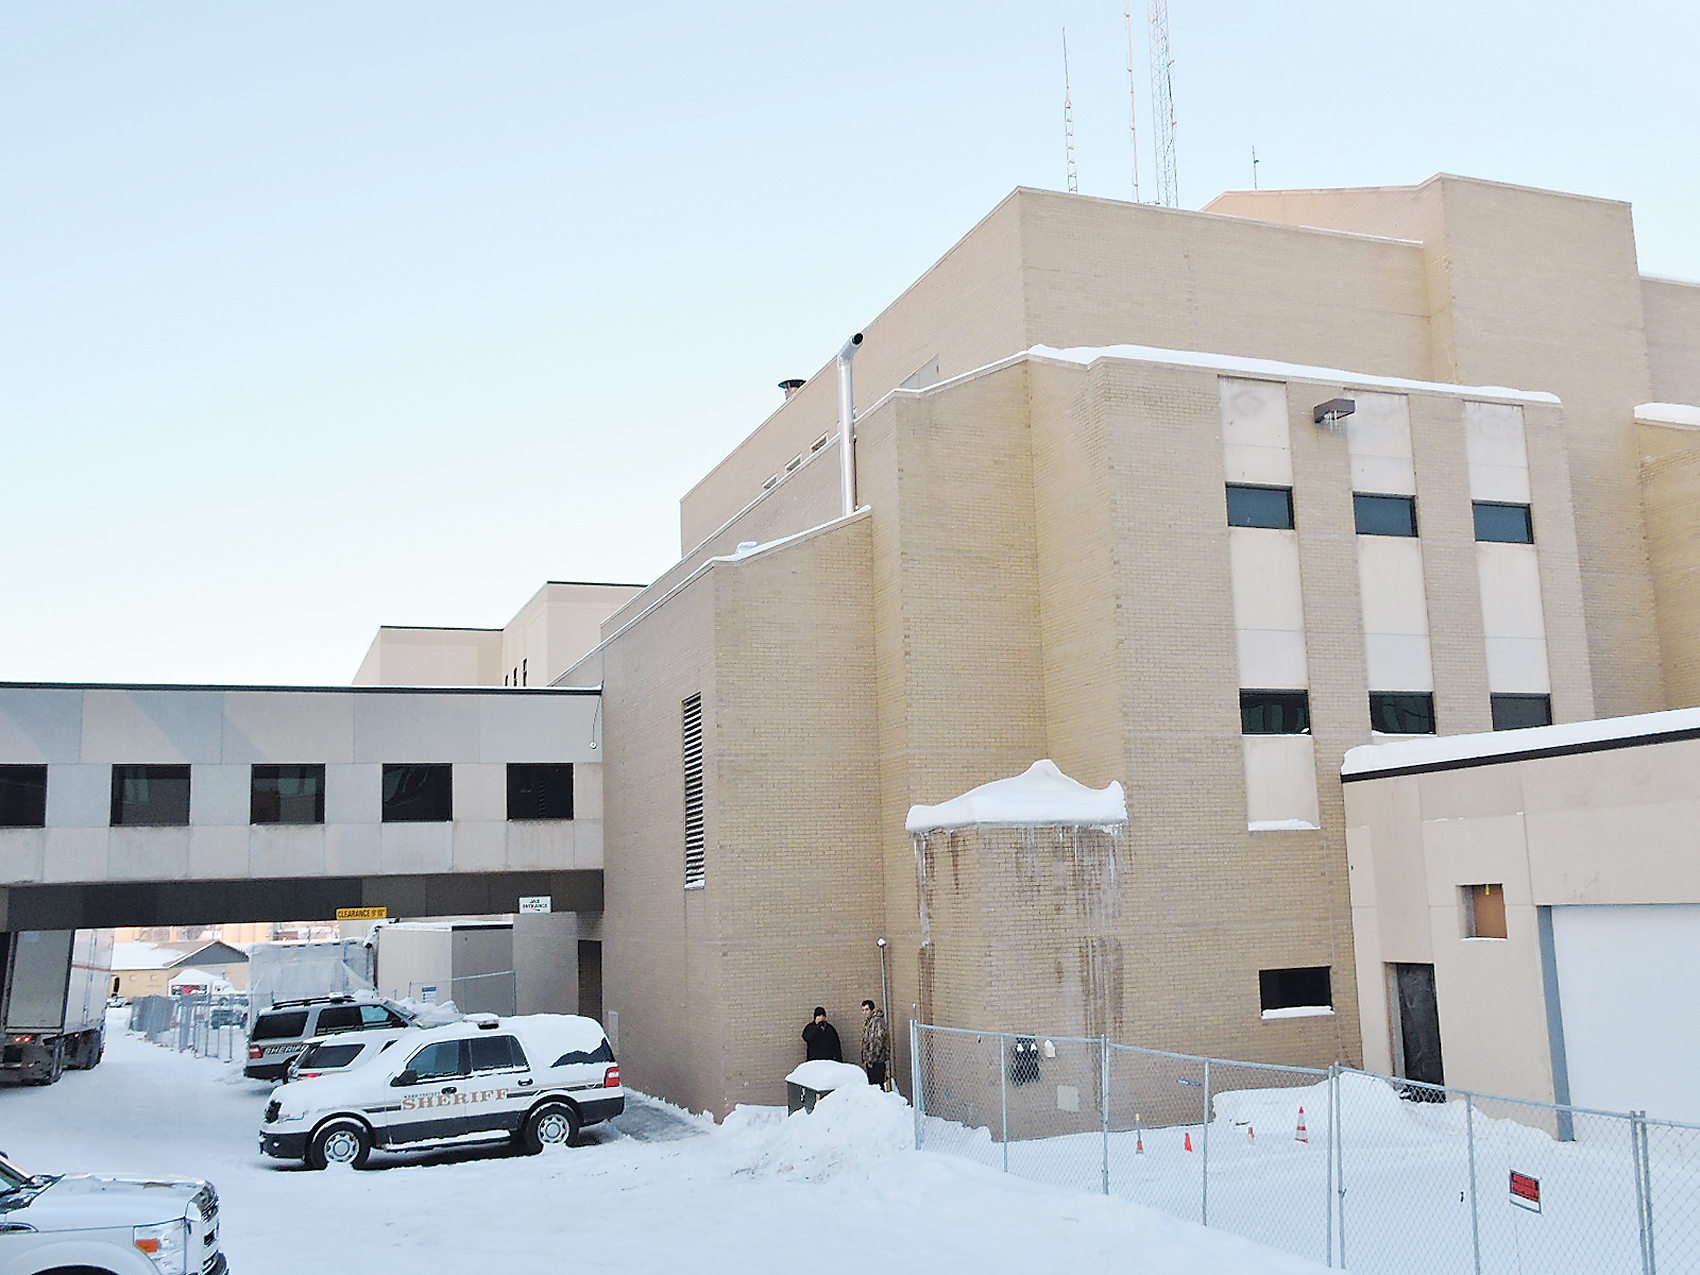 Jail death investigated | News, Sports, Jobs - Minot Daily ...